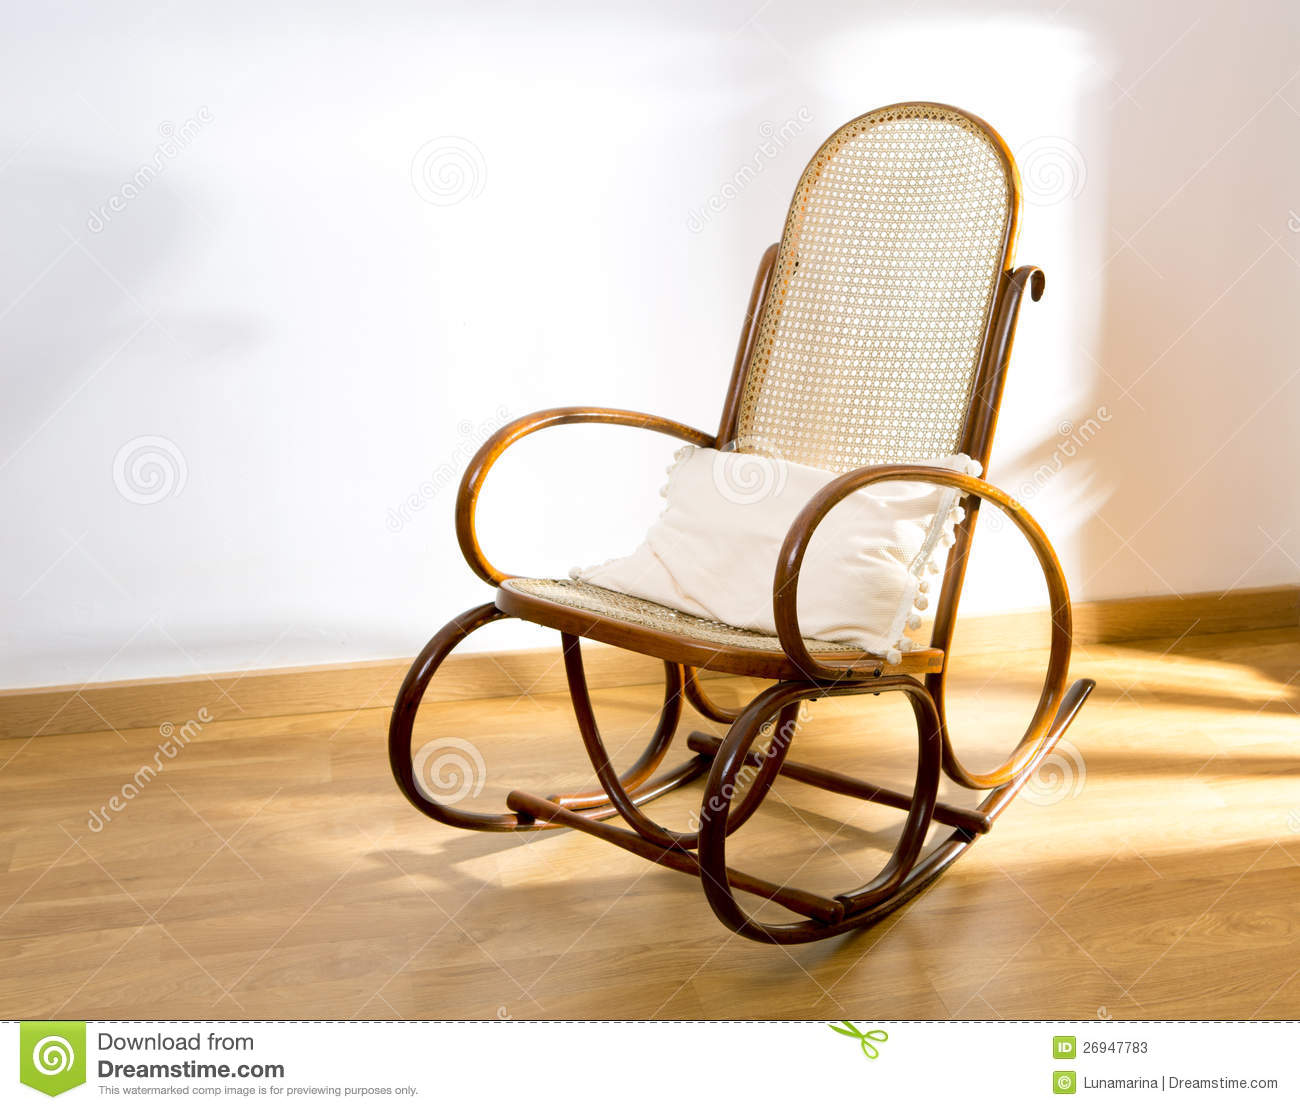 Golden Retro Rocker Wooden Swing Chair Stock Image  Image